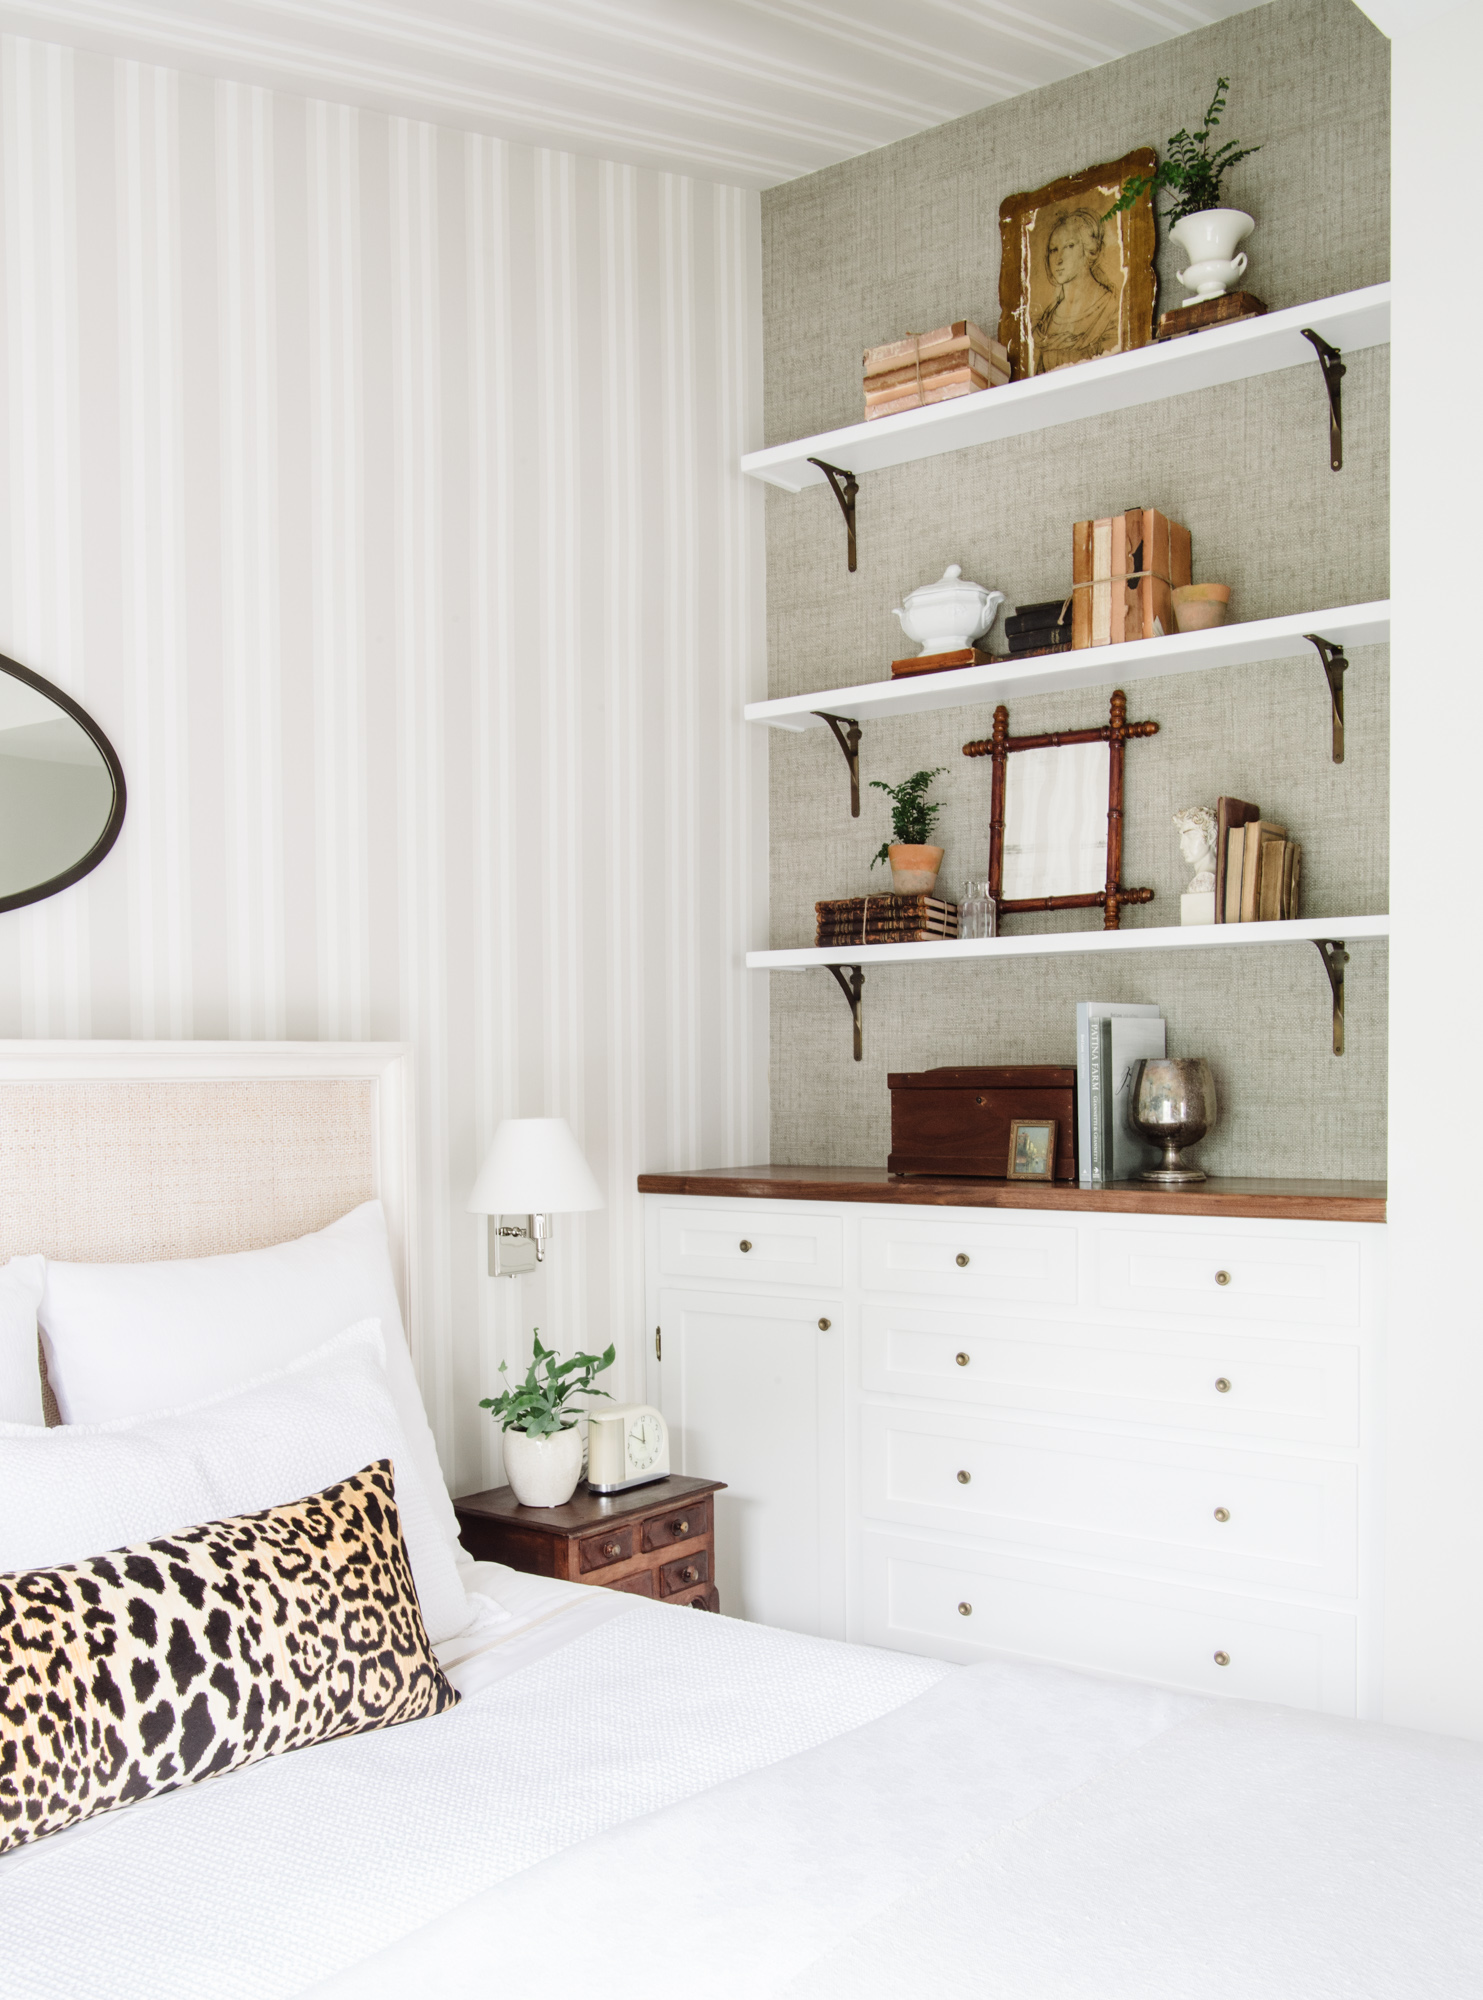 Project Reveal: Master Bedroom Oasis — Alison Giese Interiors